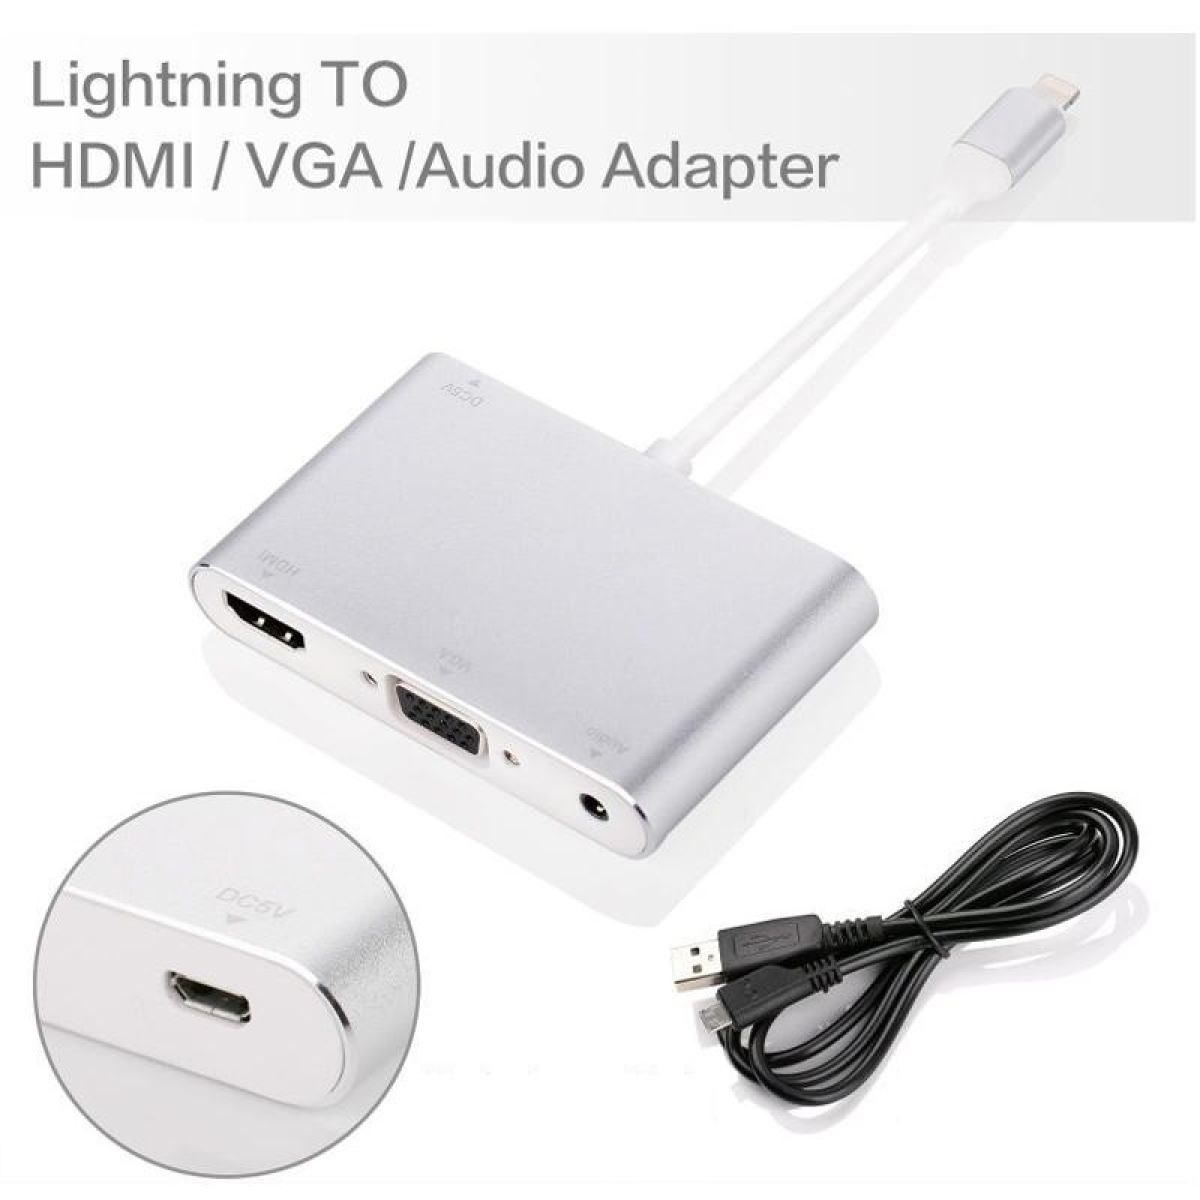 Lightning 8pin / HDMI / VGA audio Adapter - iPhone/iPad